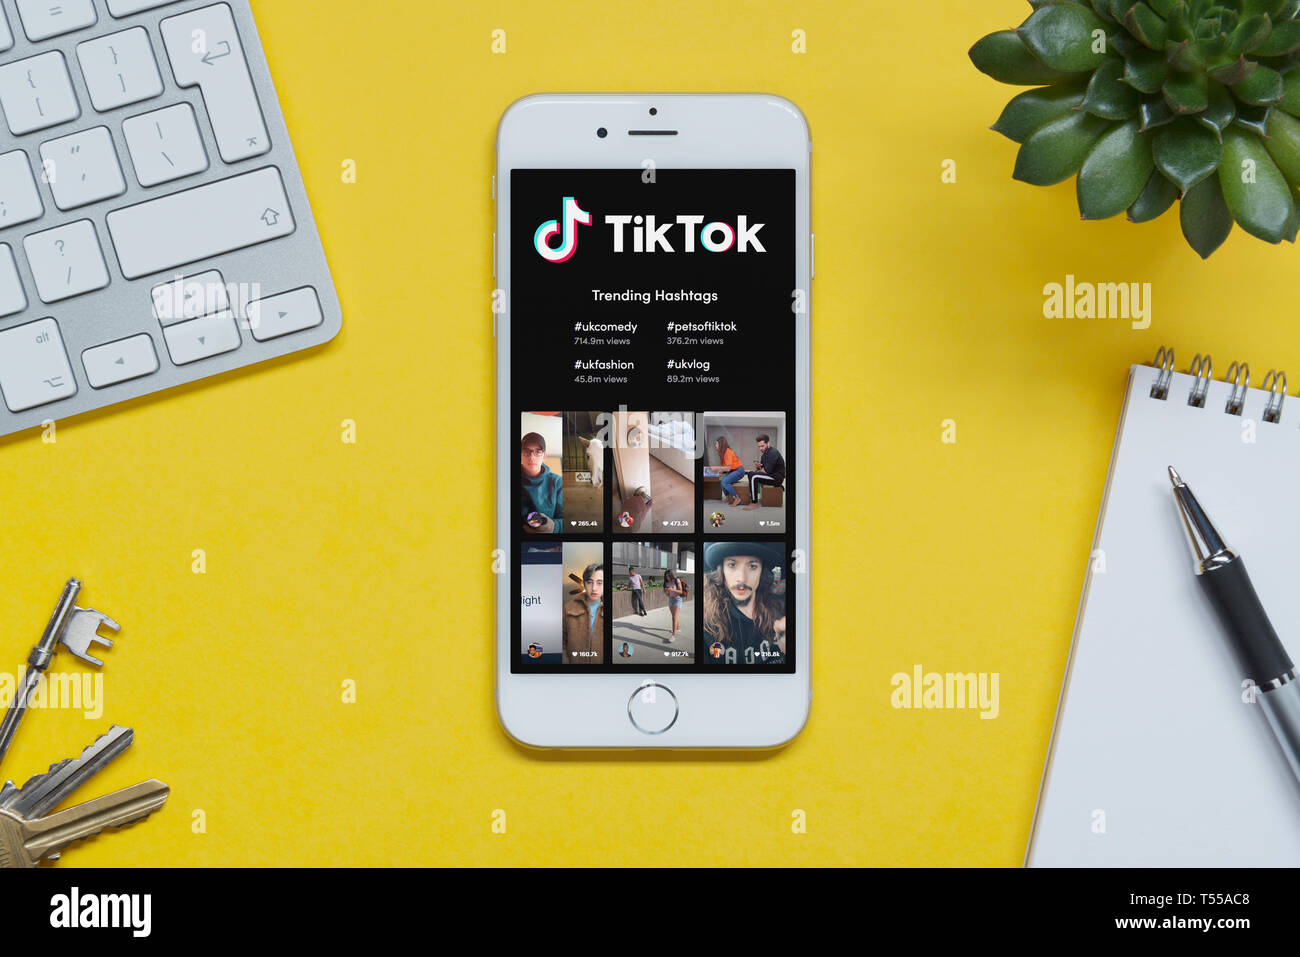 ad79495901e An iPhone showing the Tik Tok website rests on a yellow background table  with a keyboard